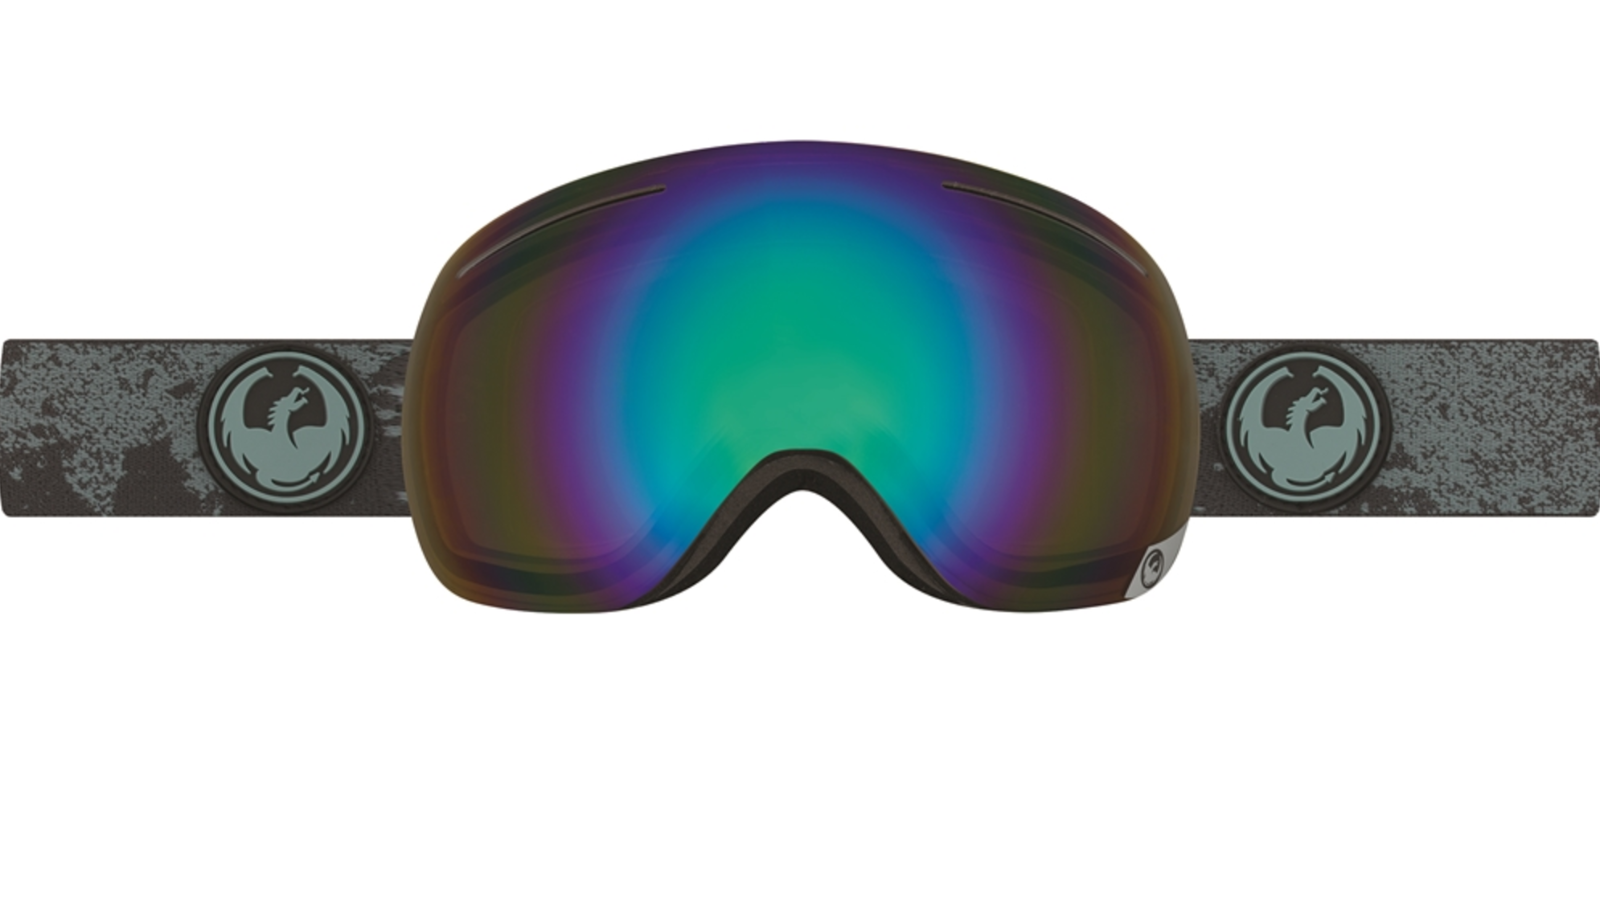 NEW Dragon X1 Goggles-Mason Grau-Grün Flash Polarized-SAME DAY SHIPPING